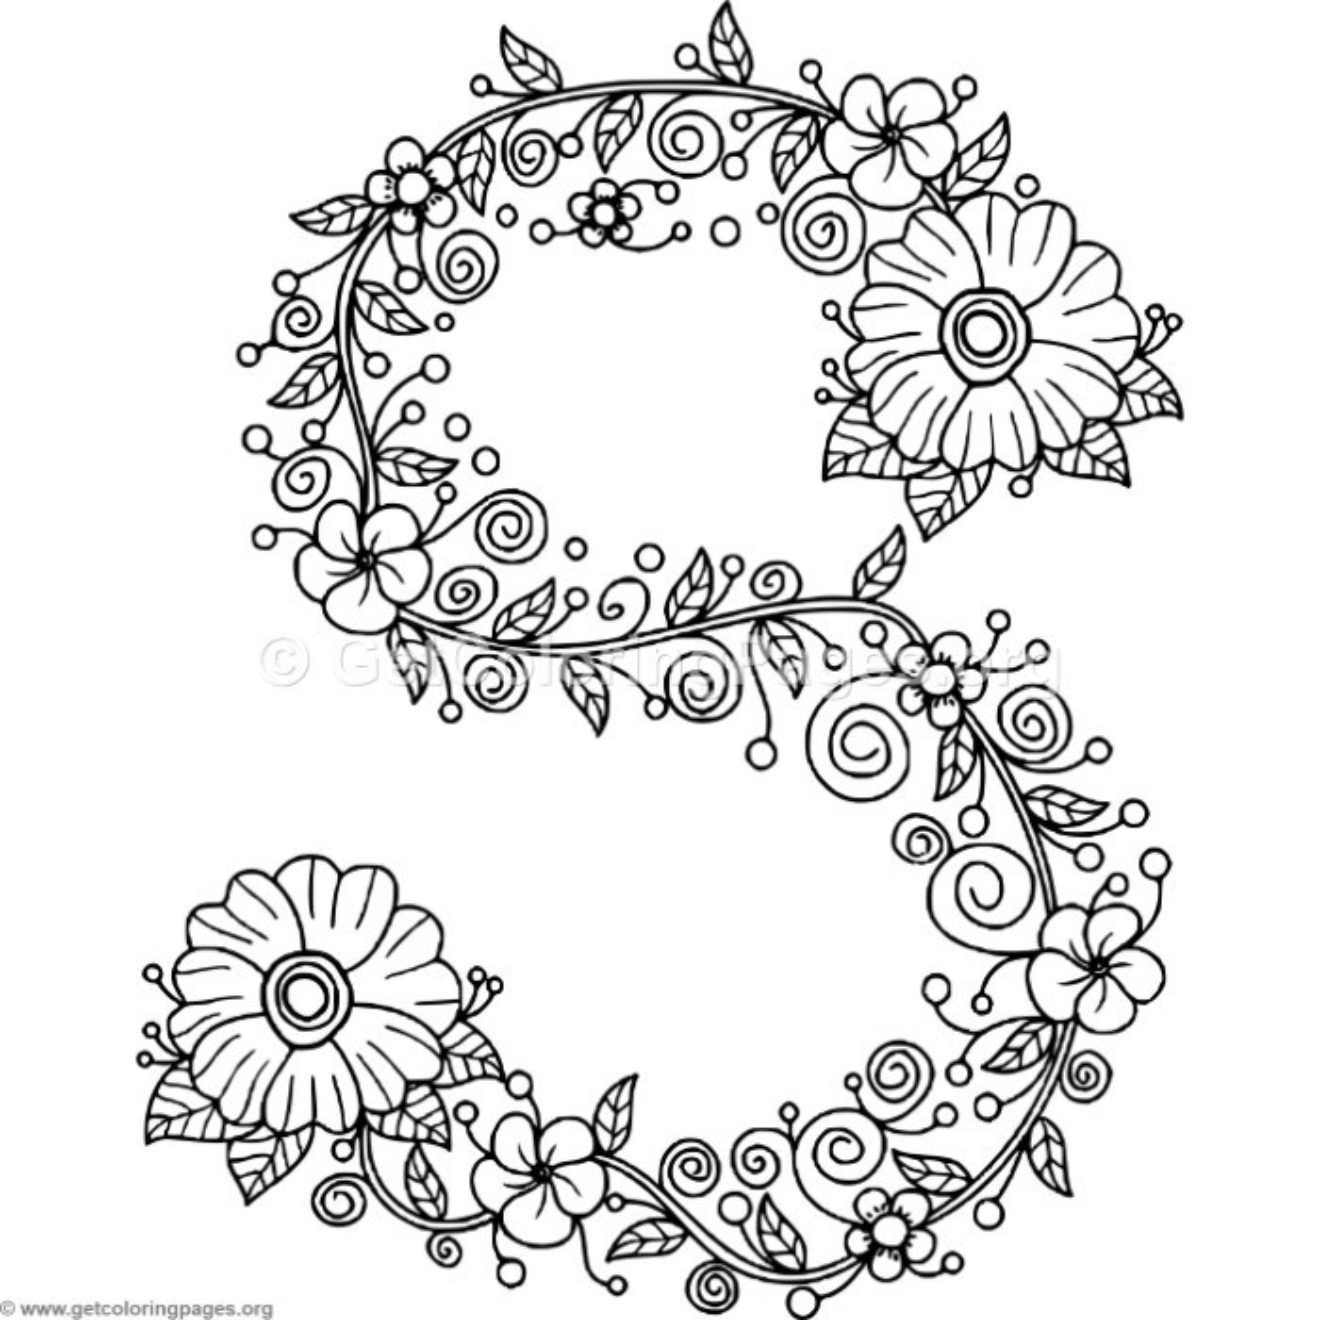 Floral Alphabet Coloring Pages Getcoloringpages